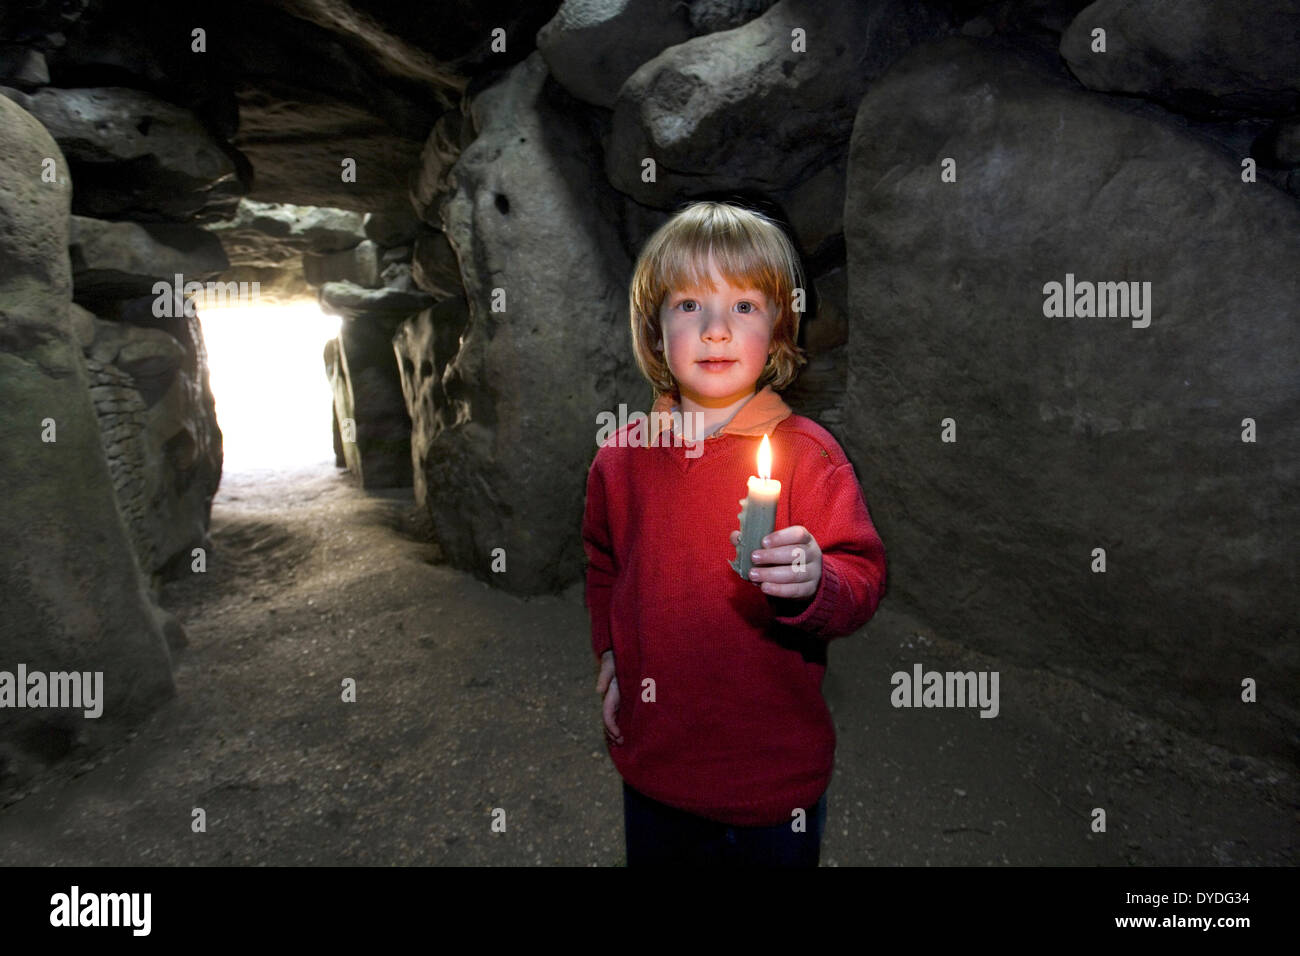 A four year old boy explores West Kennet burial chamber with a candle. - Stock Image